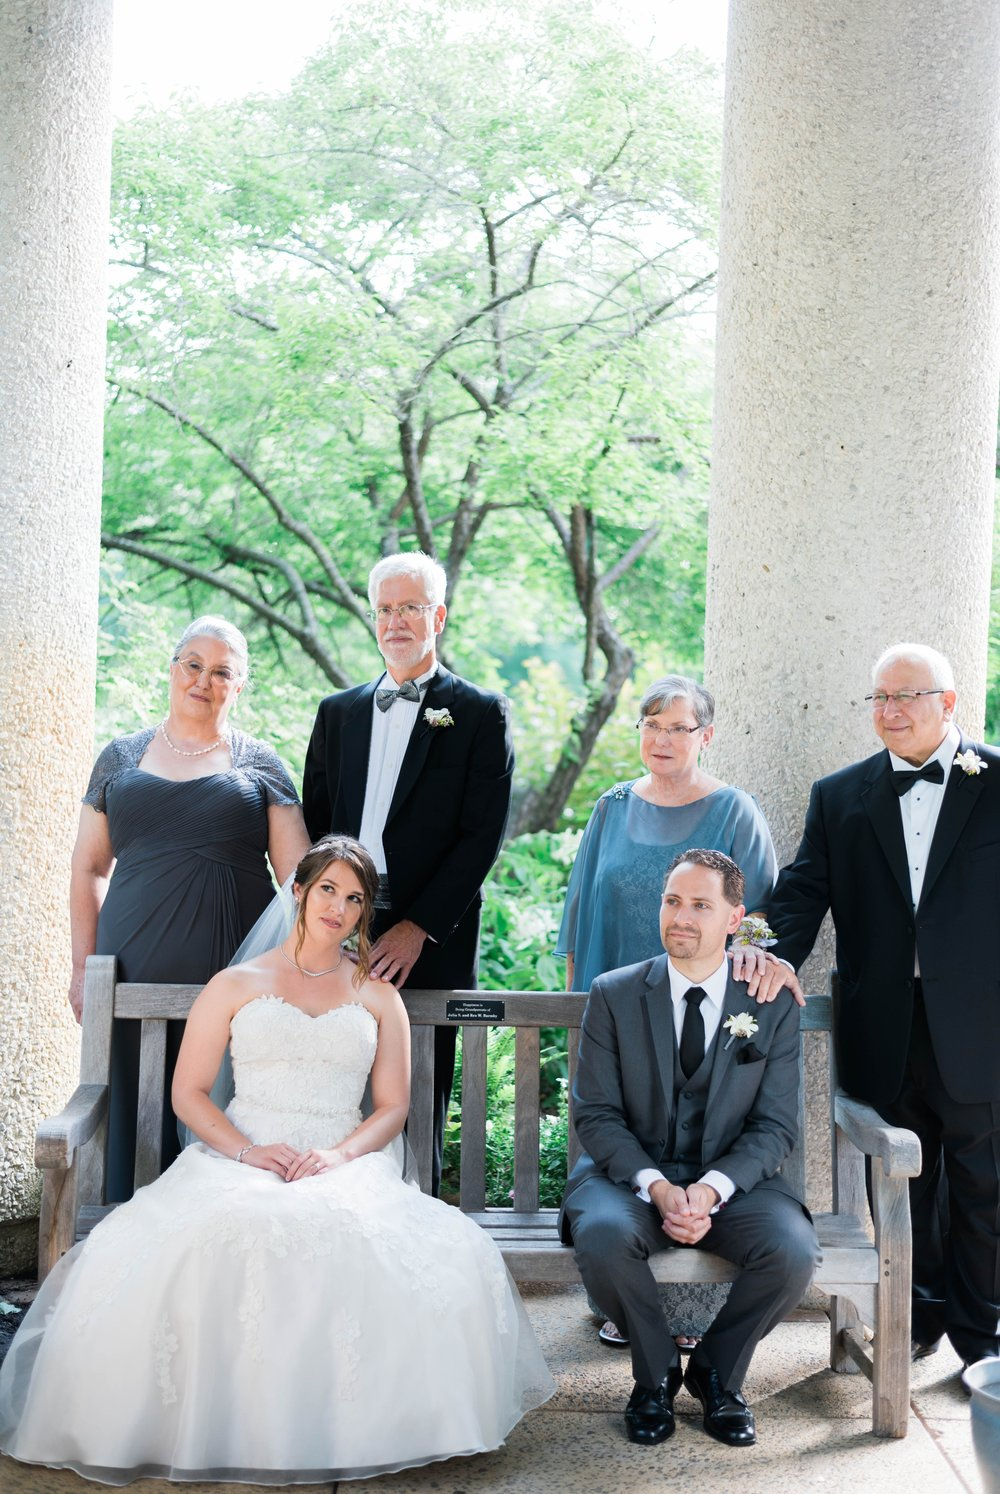 TheAtriumatMeadowlark_Virginiawedding photographer_lynchburgweddingphotographer_DCweddingPhotographer_KristinAaron 14.jpg